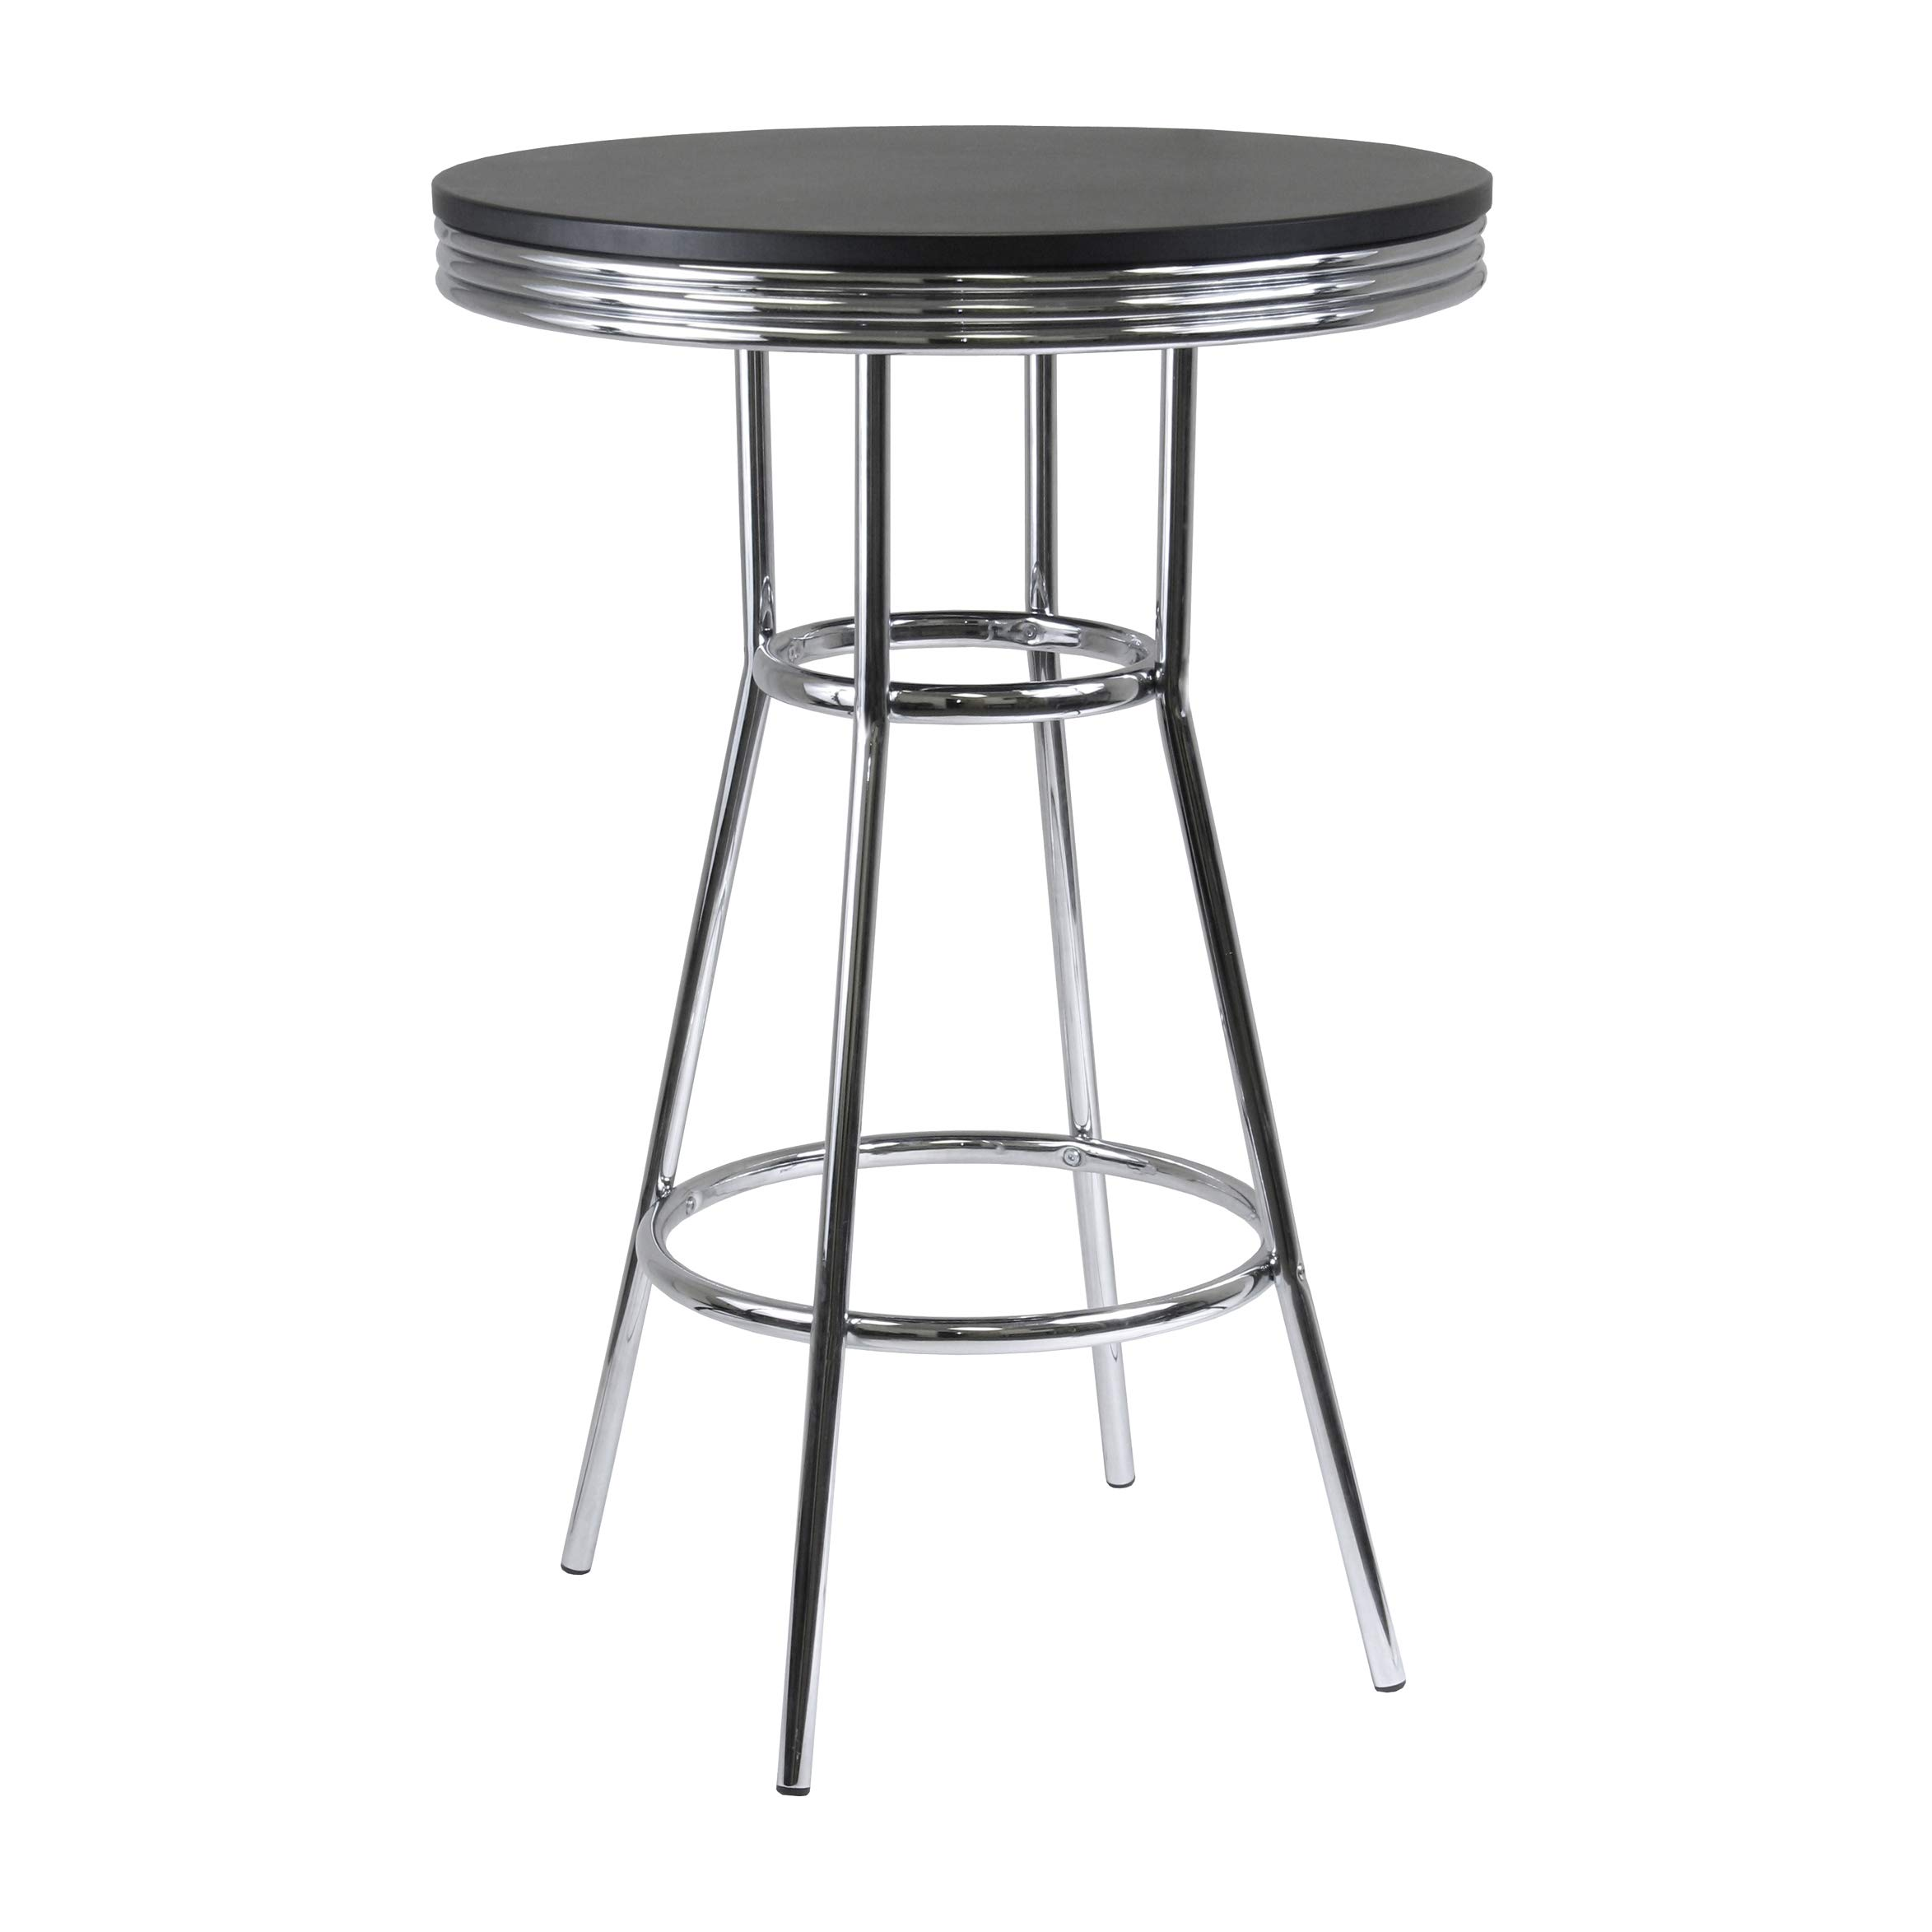 Winsome Wood 93030 Summit Dining, Black by Winsome Wood